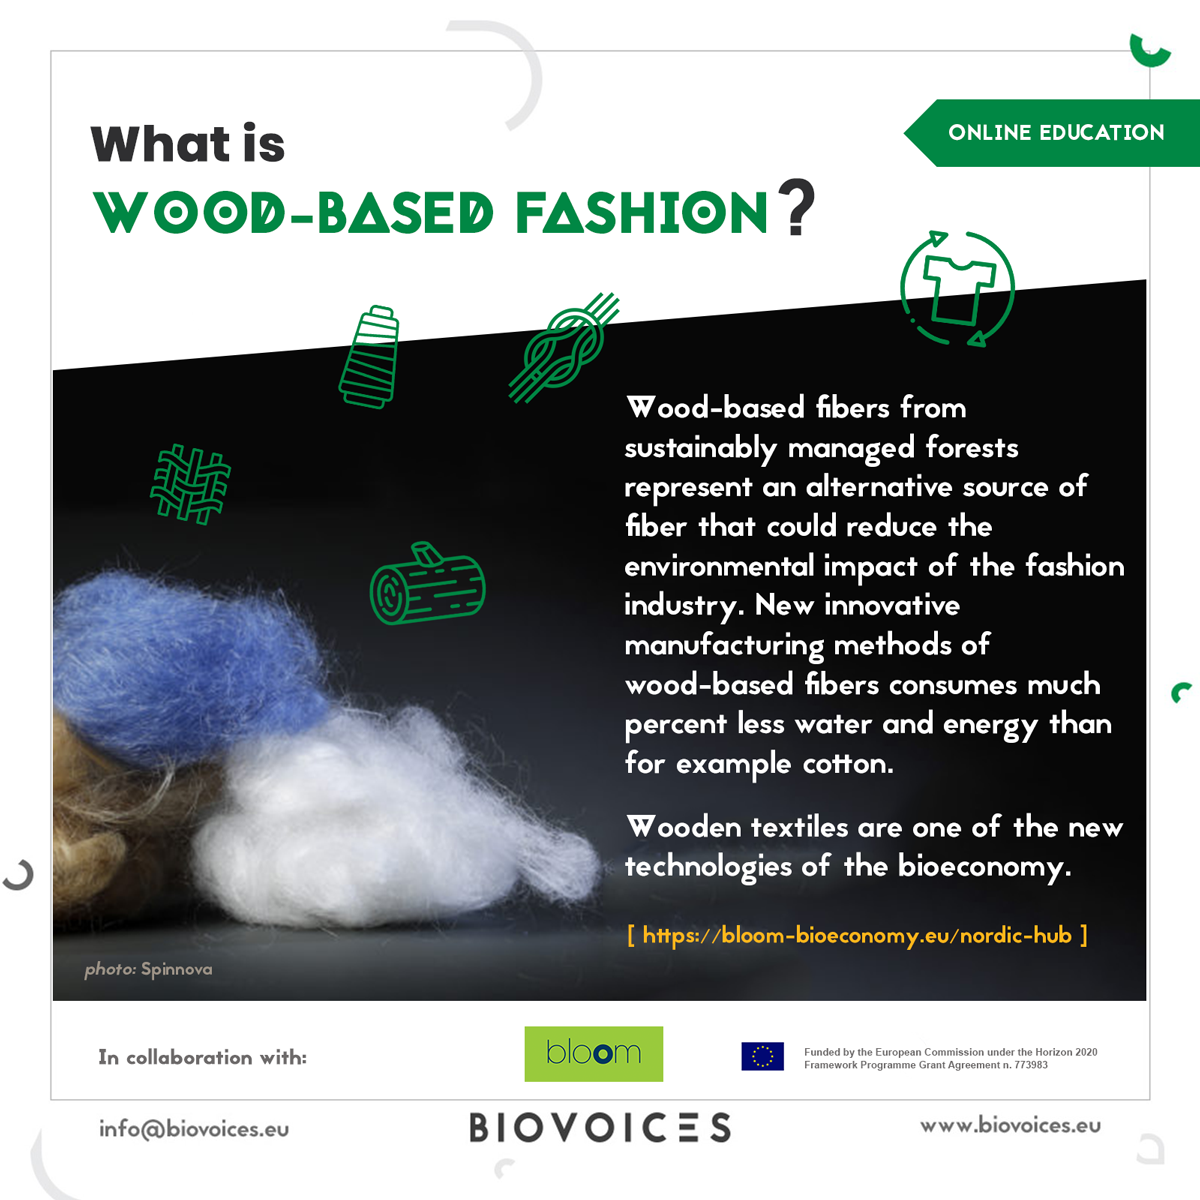 What is wood-based fashion?